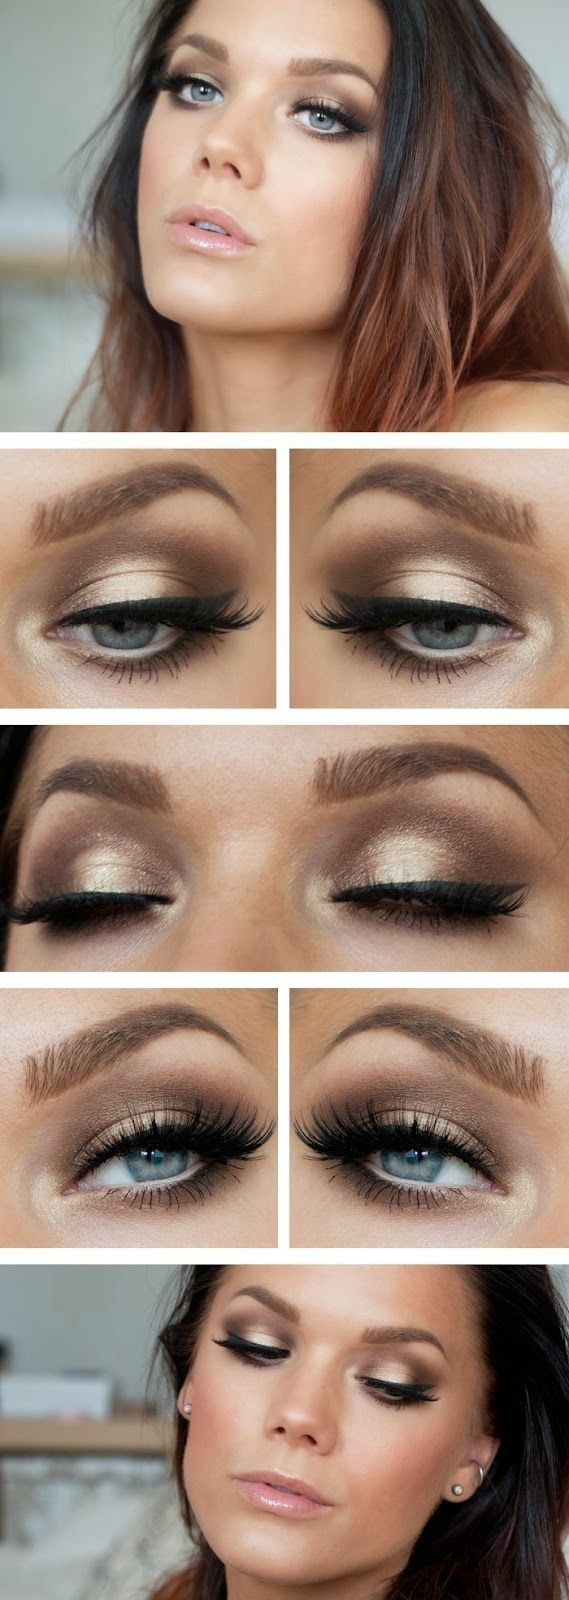 How to Chic: BEST MAKE UP FOR BRUNETTES #makeup #brunettes